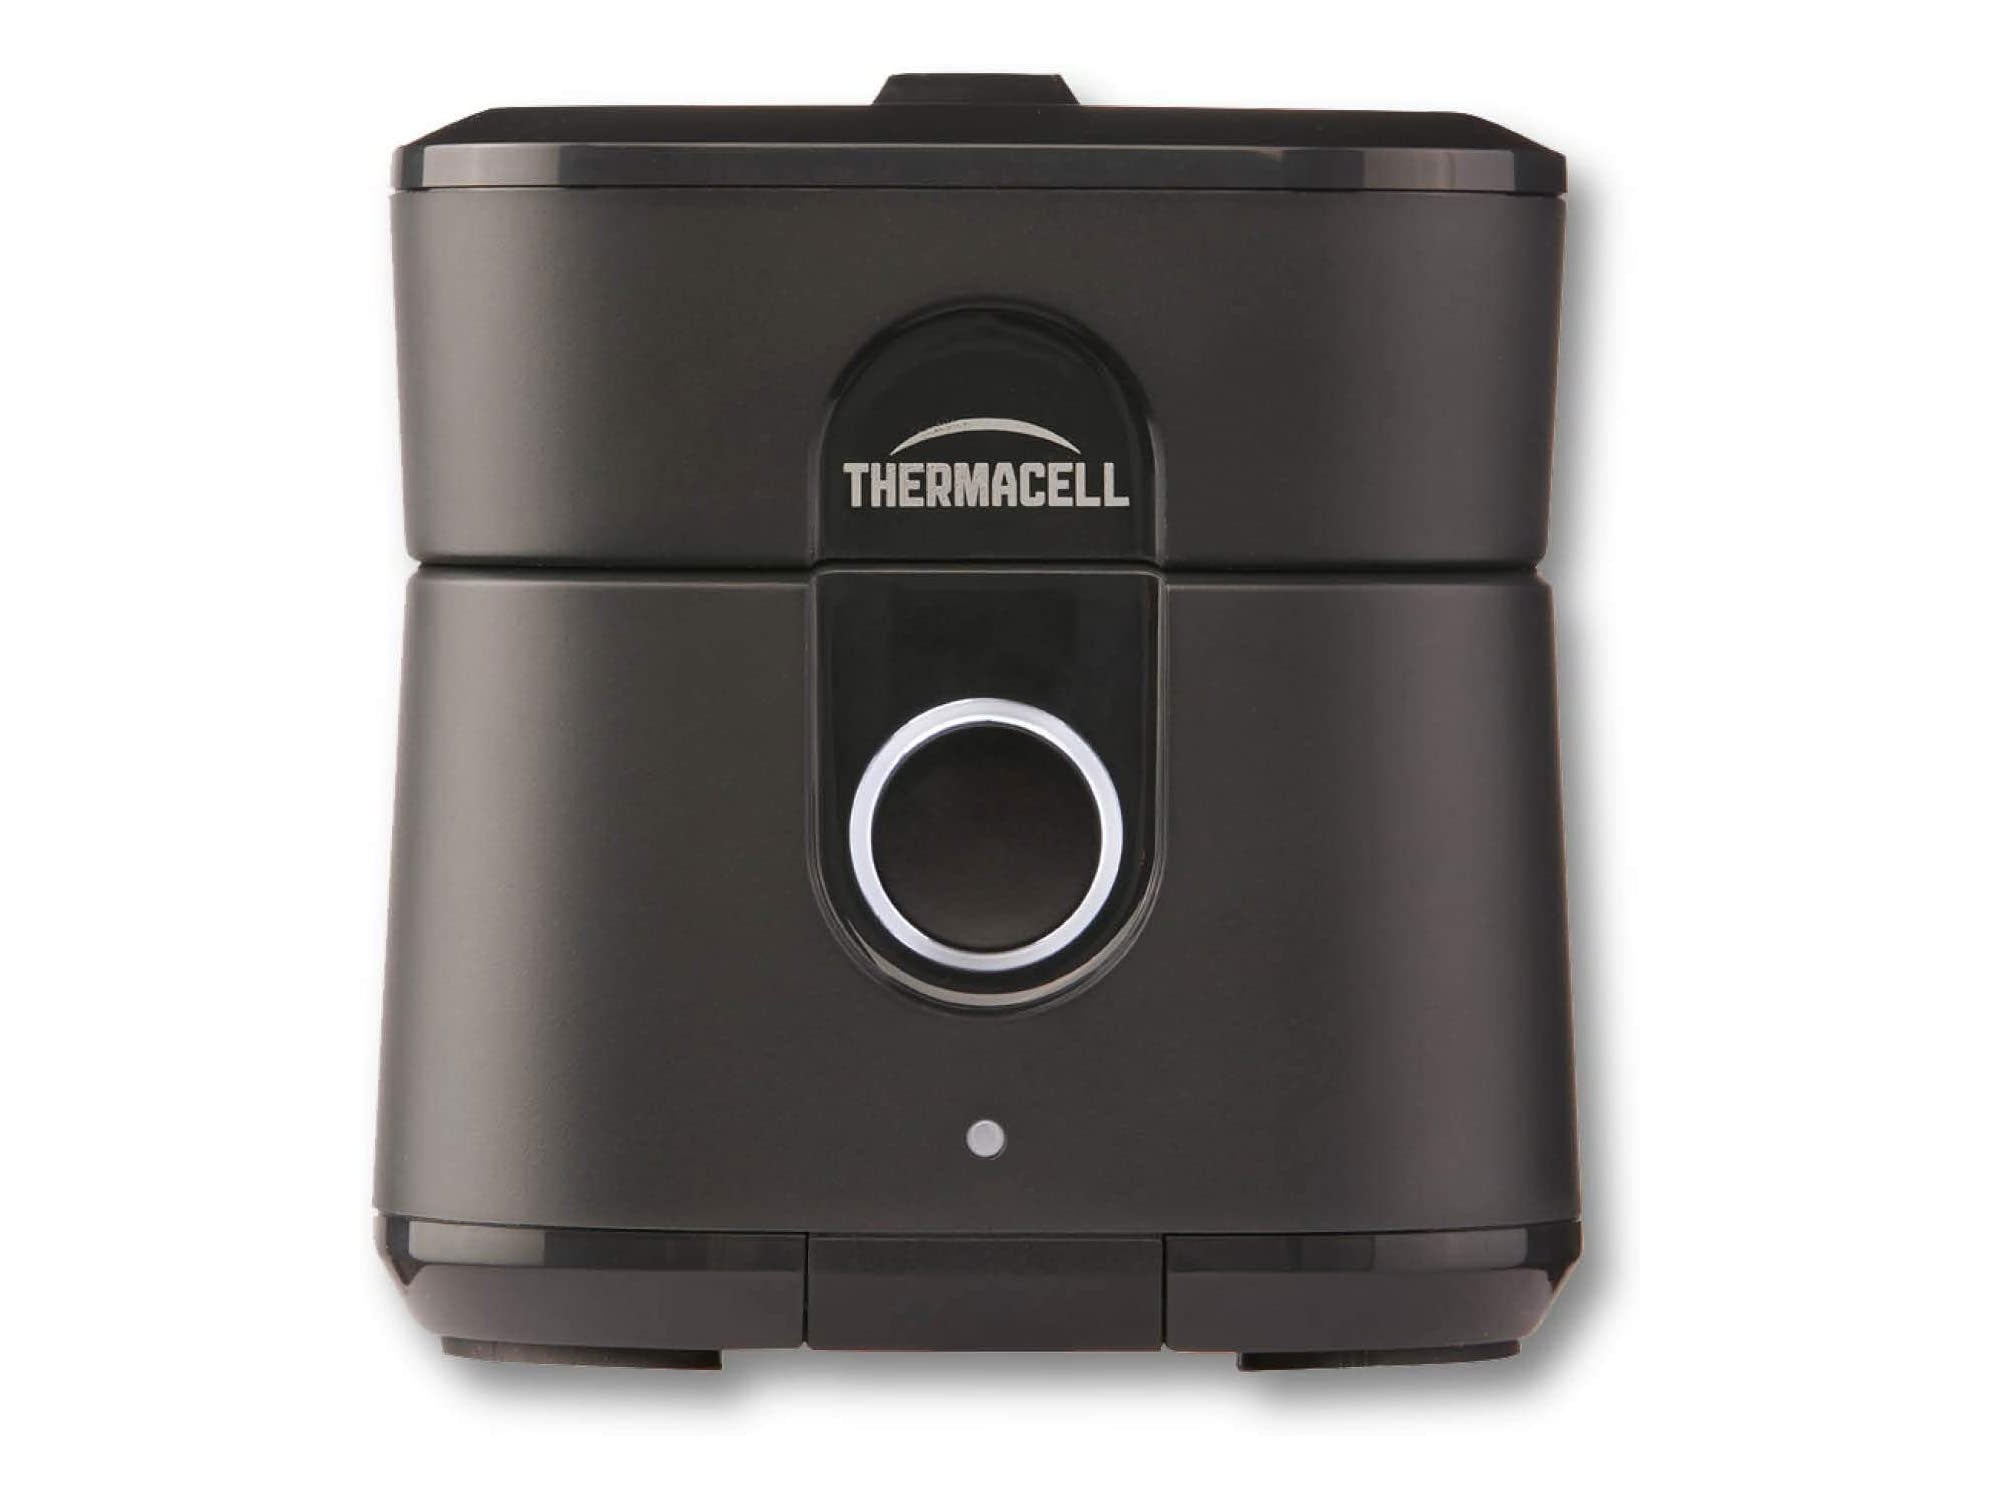 Radius Zone Mosquito Repeller from Thermacell, Gen 2.0, Black; No Spray Mosquito Repellent